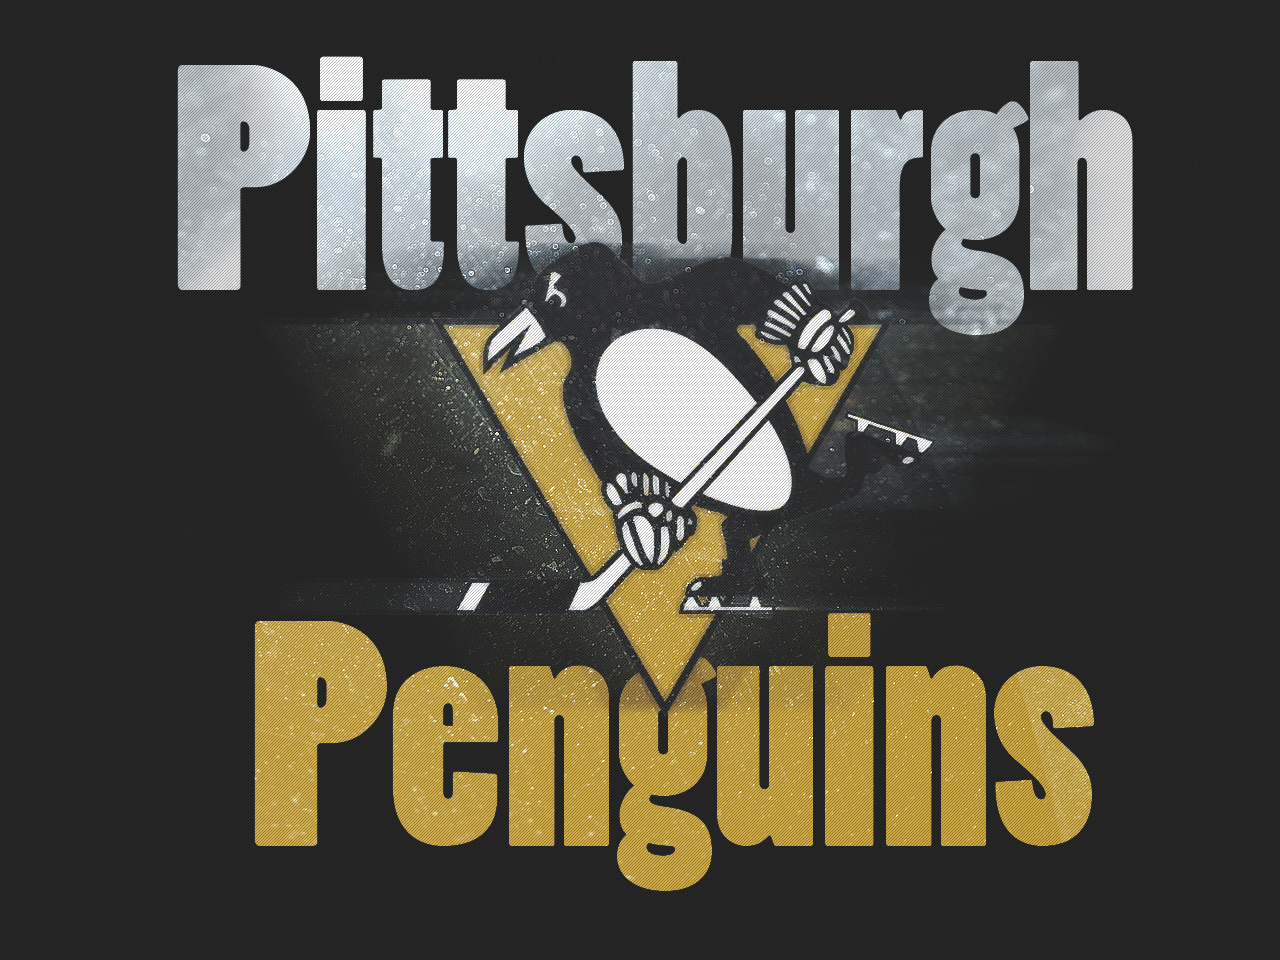 Pittsburgh Penguins High Quality Wallpapers Gallery, QZG.39694466